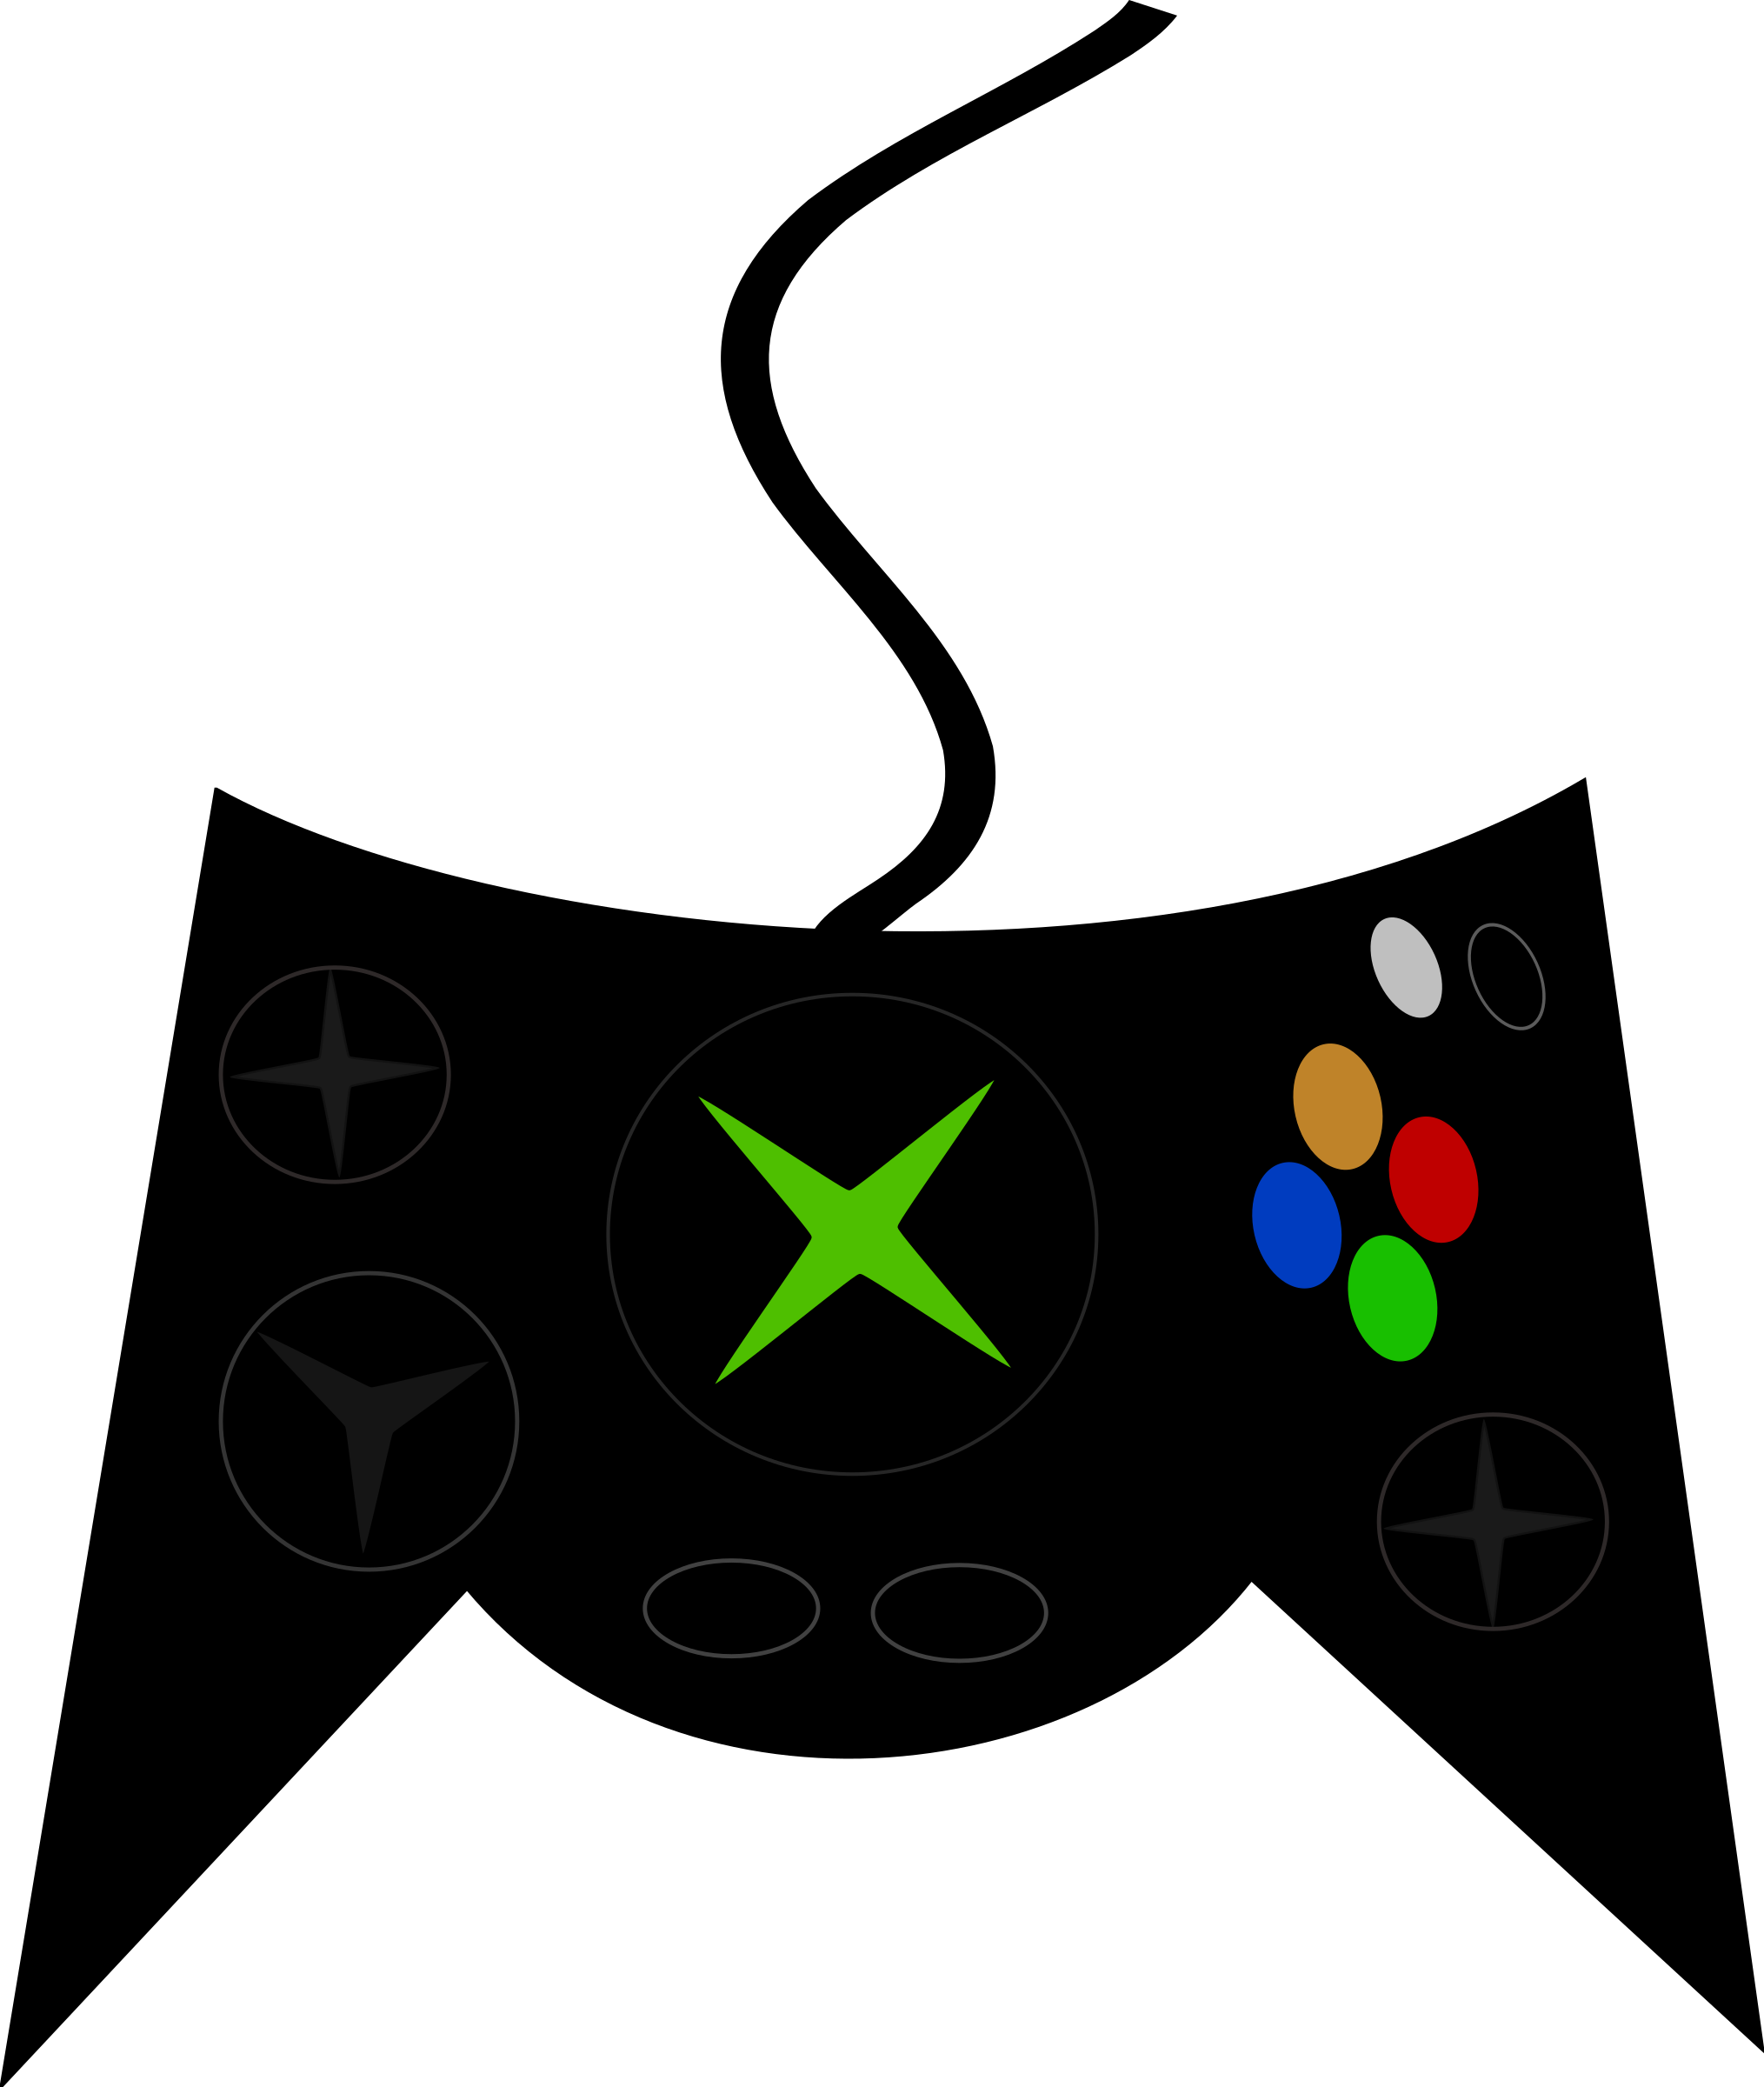 xbox-controller 01 by Anonymous